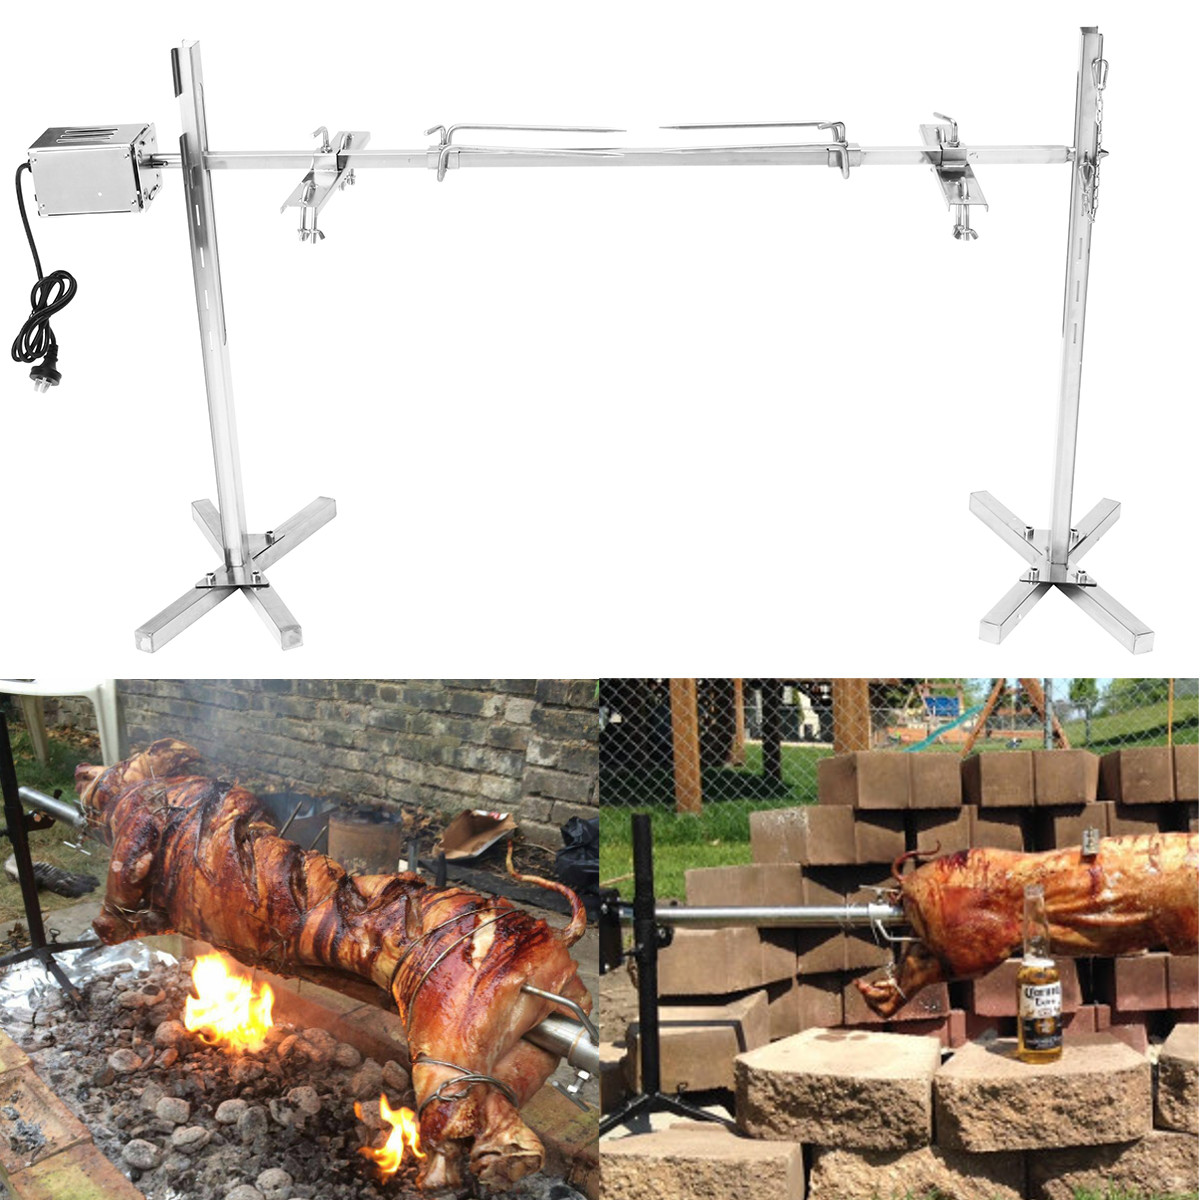 15W US Electric Automatic BBQ Grill Outdoor Camping Rotisserie Motor Roast Branch Metal Spit Roaster Rod Charcoal Pig Chicken15W US Electric Automatic BBQ Grill Outdoor Camping Rotisserie Motor Roast Branch Metal Spit Roaster Rod Charcoal Pig Chicken